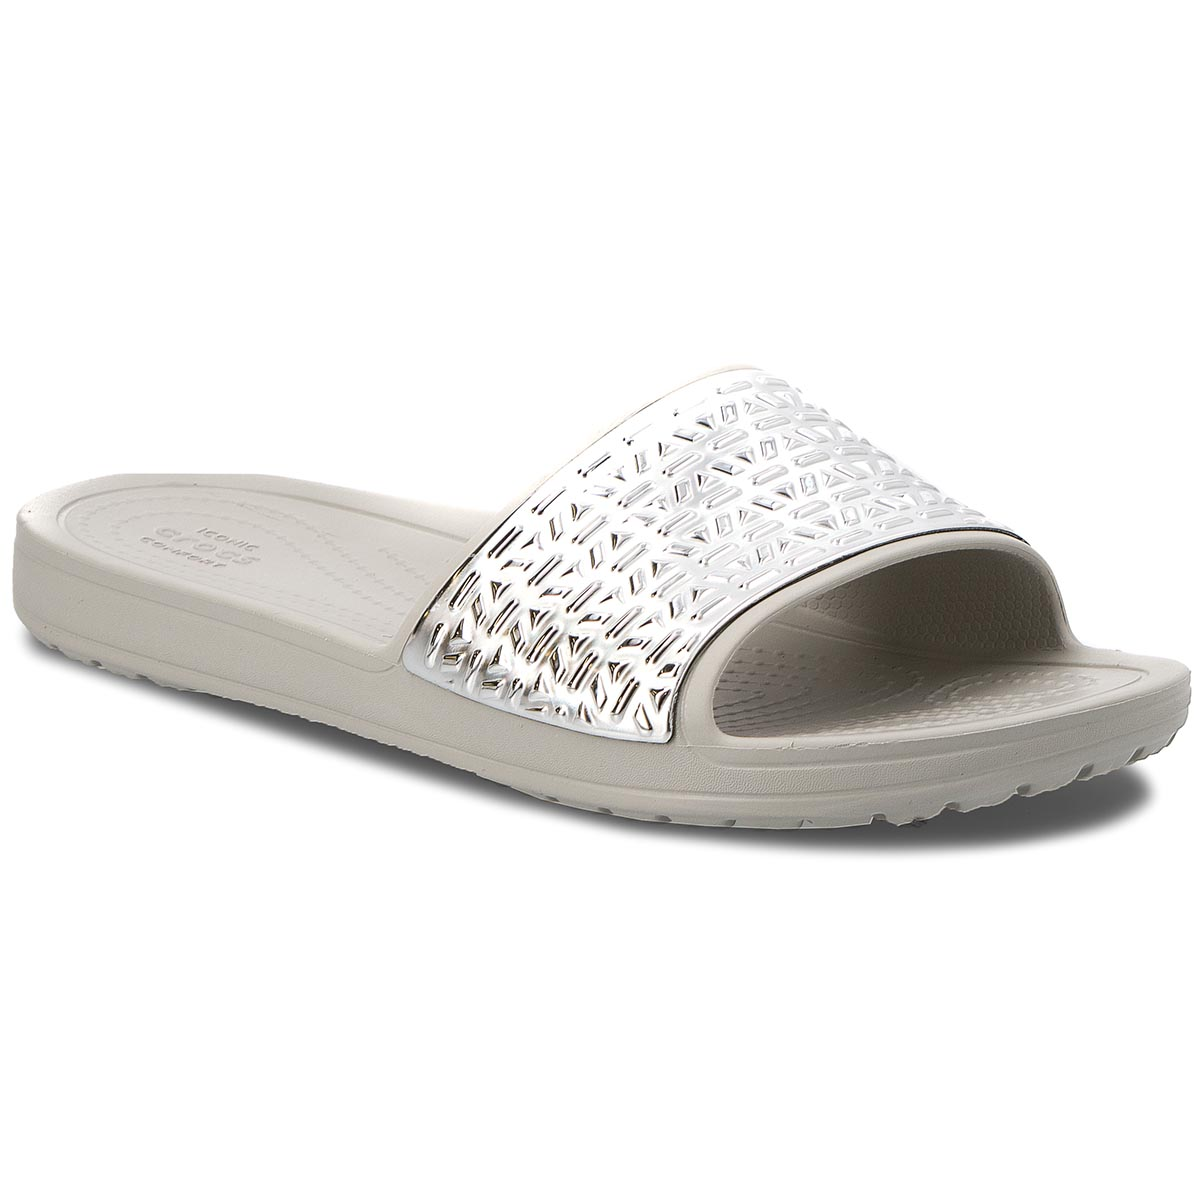 Klapki CROCS - Sloane Graphic Etched Slide W 205130  Pearl White/Silver